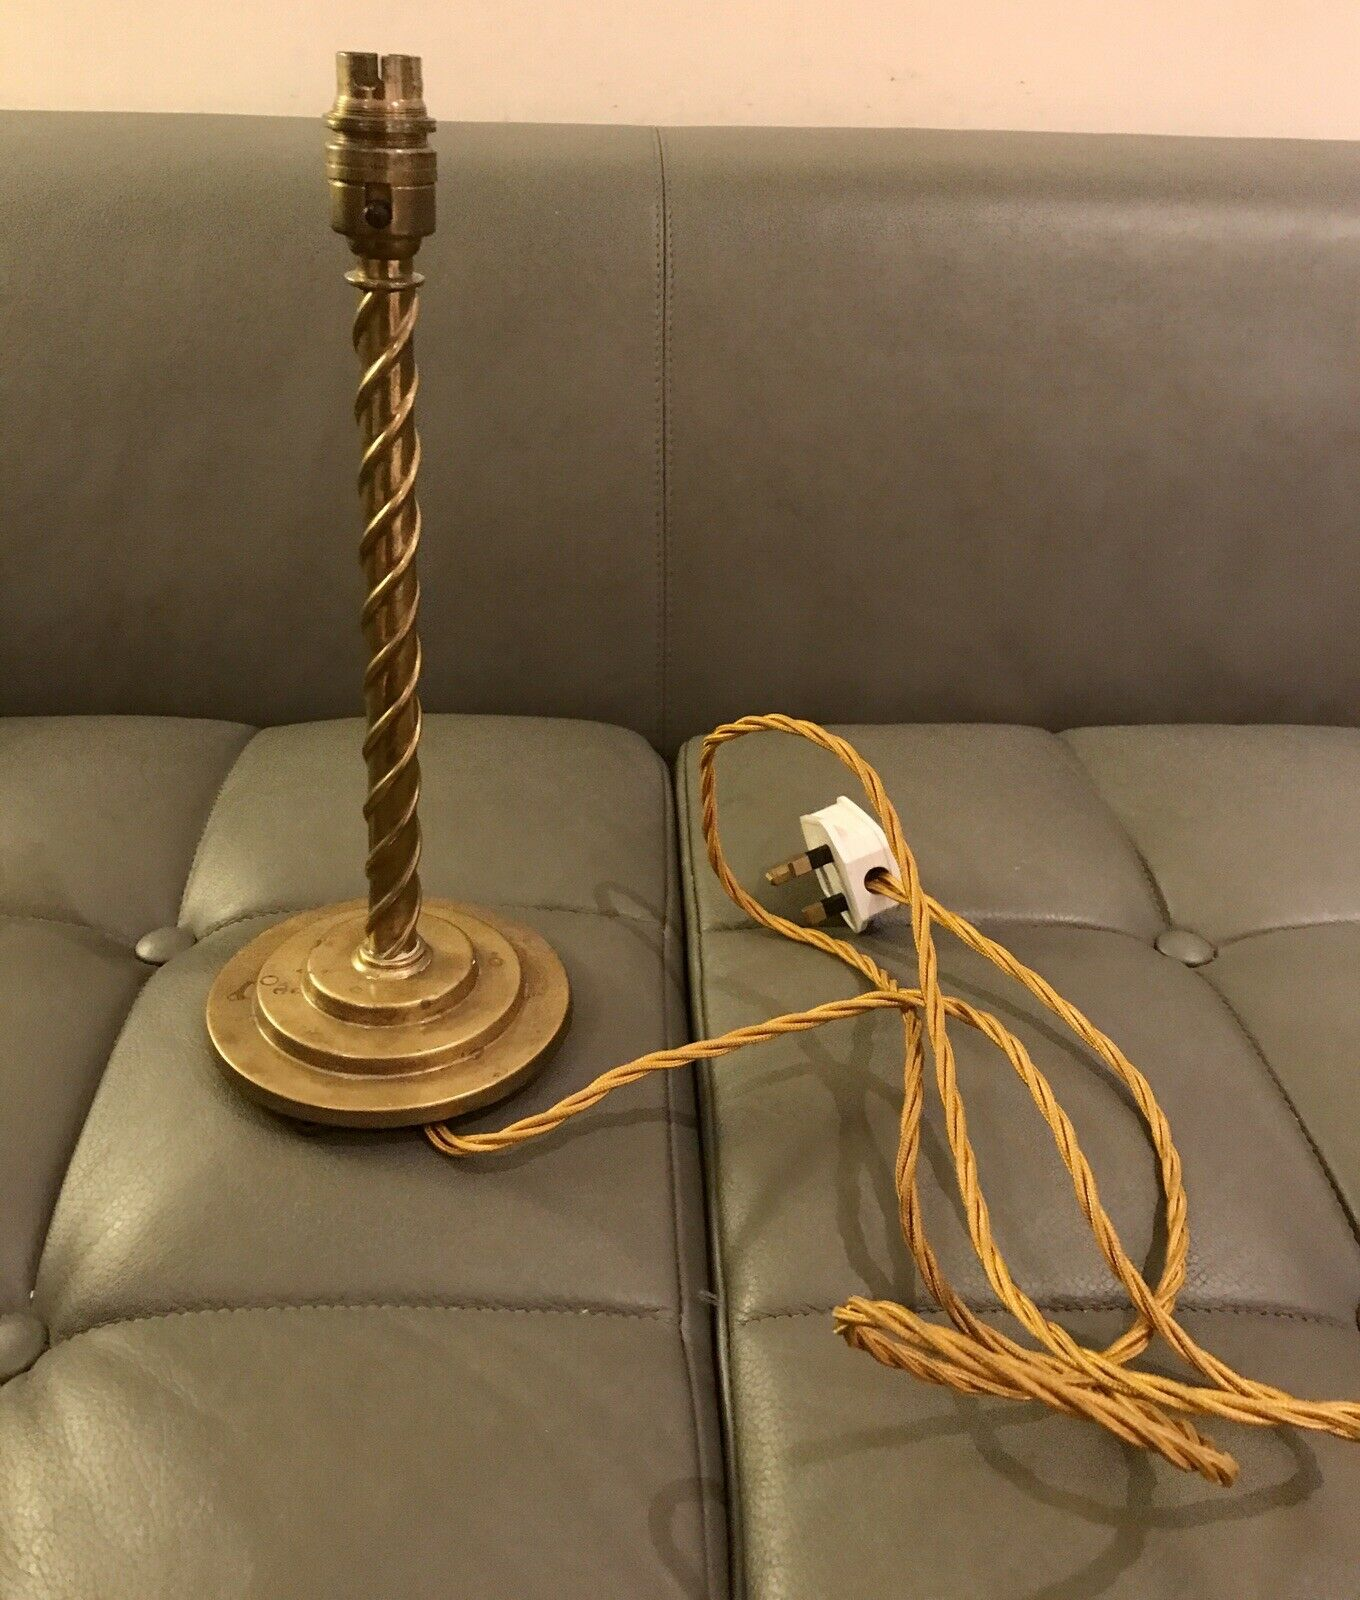 Early c20th Brass Spiral Fluted Table Lamp Base By Walkerlite 32cm High Rewirot